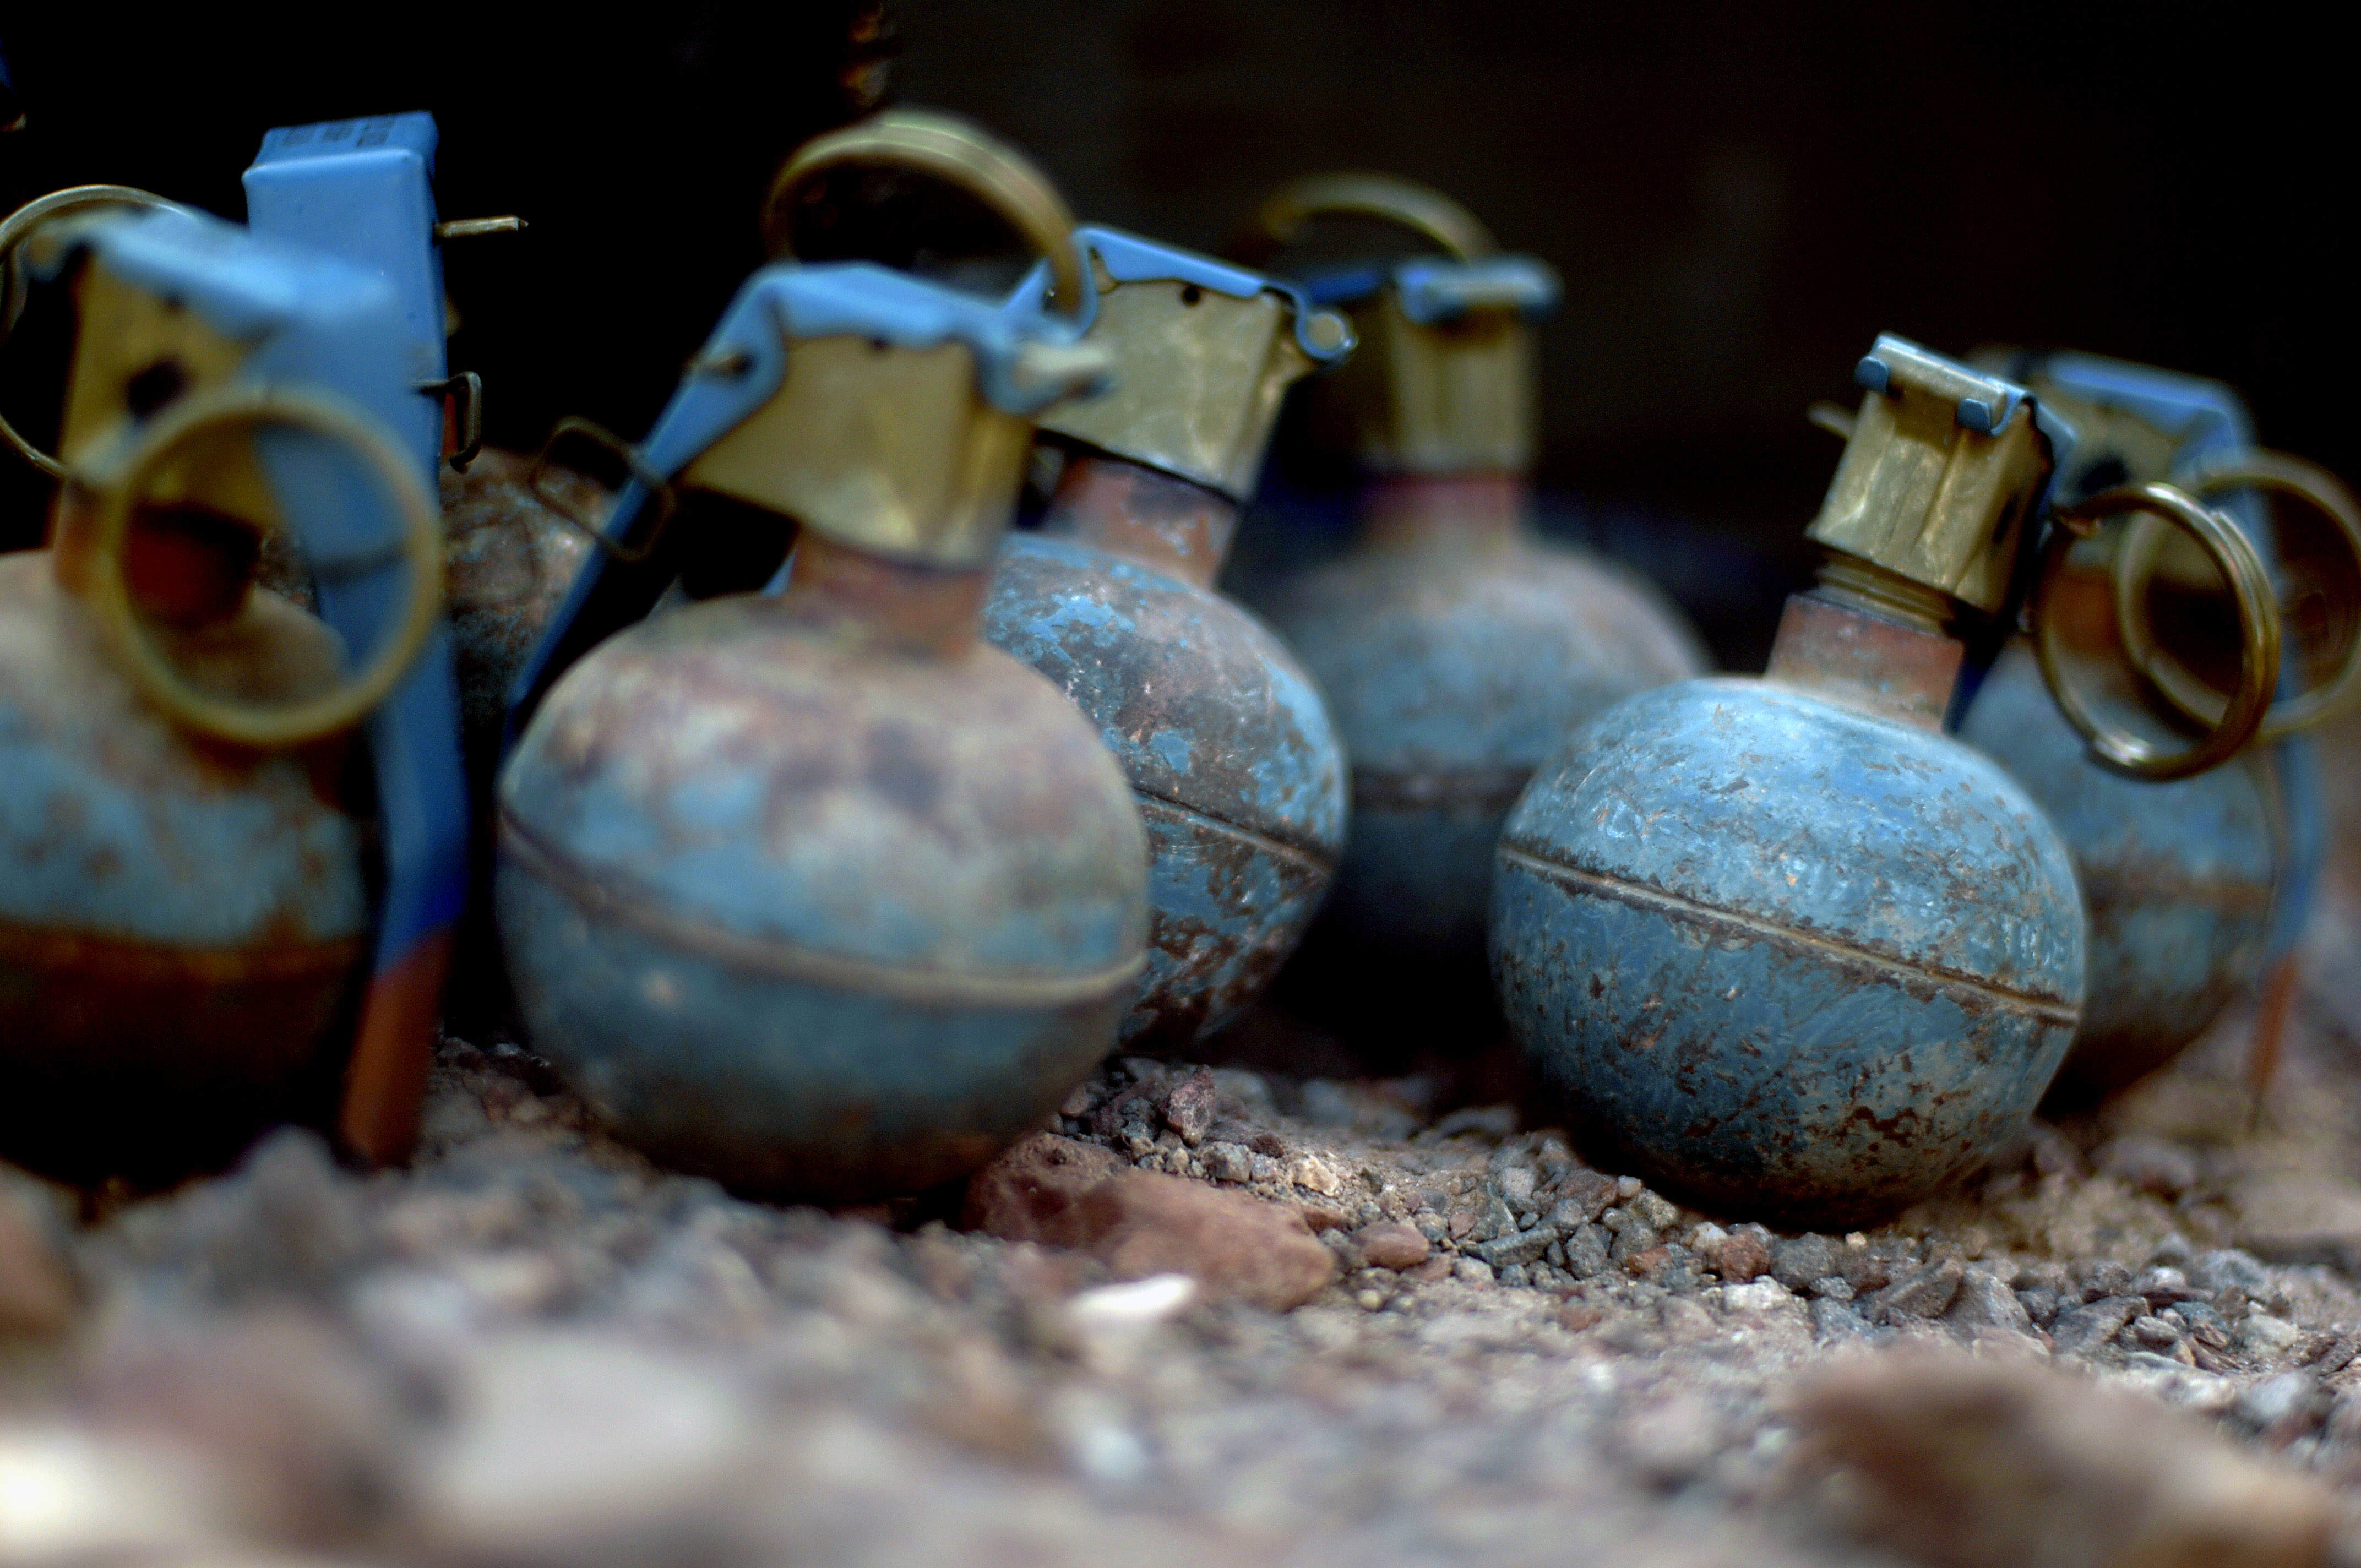 grenade1 Judge Asks Policeman How Grenades Work, He Takes It Far Too Literally